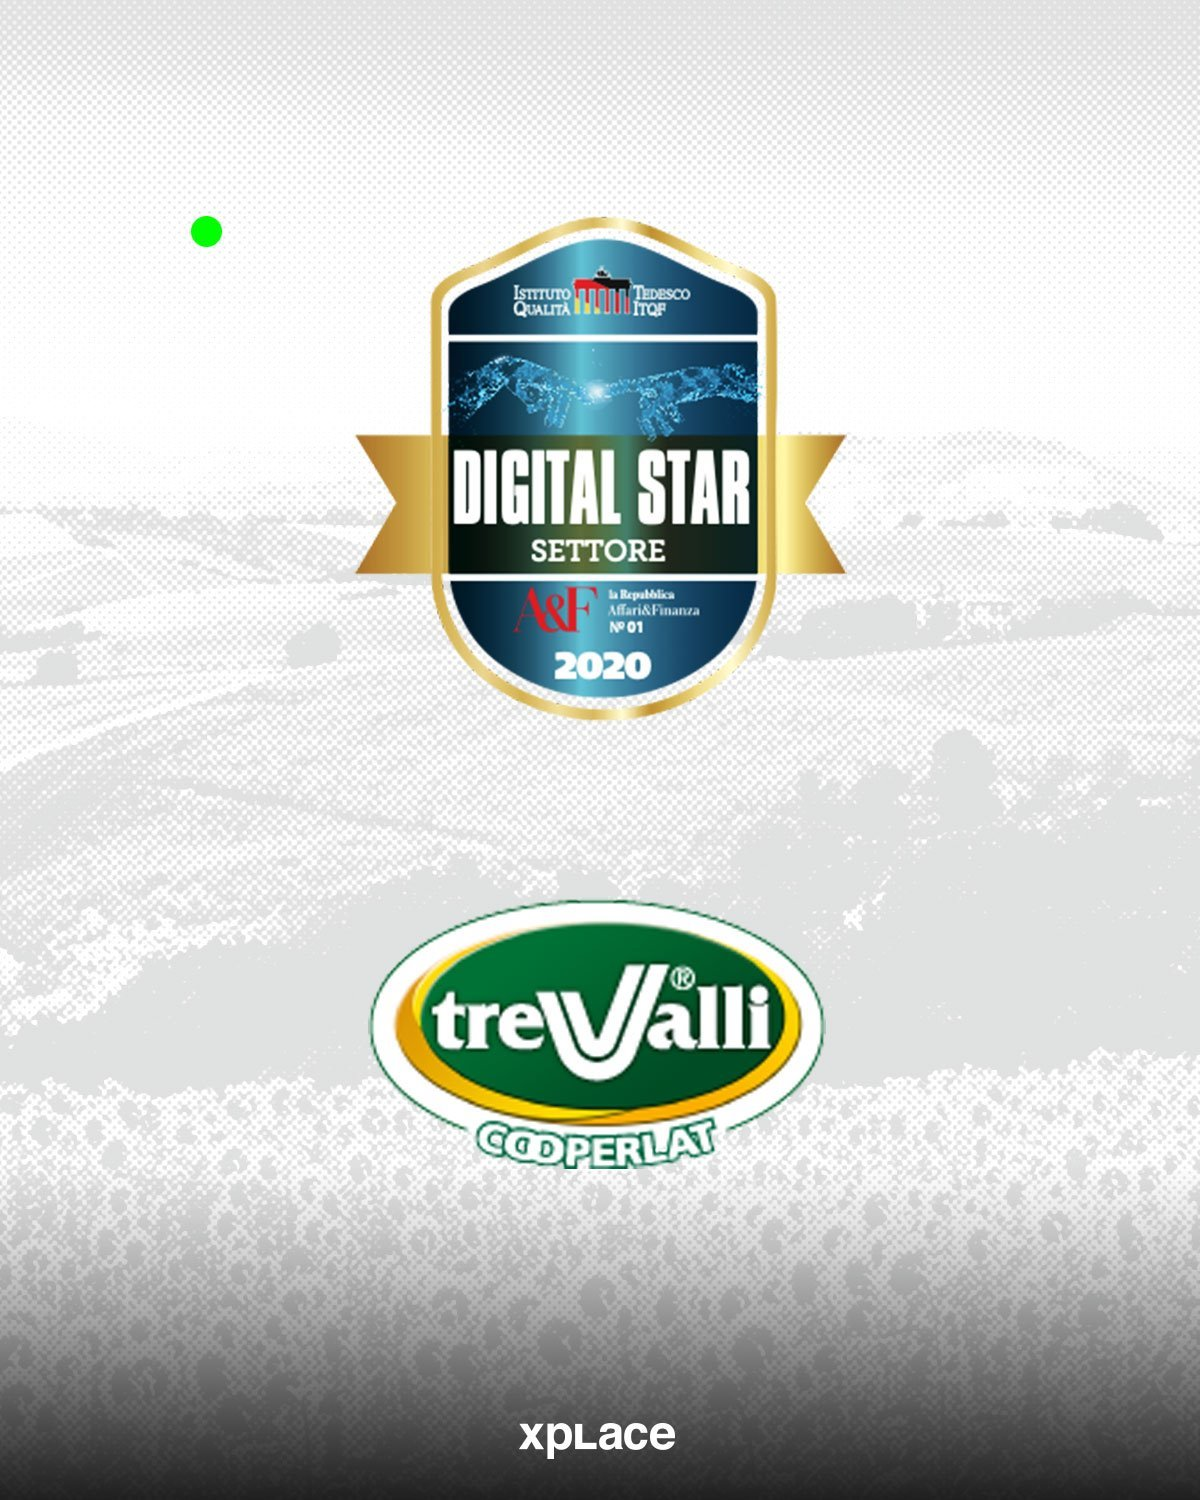 Premio Digital Star per Cooperlat